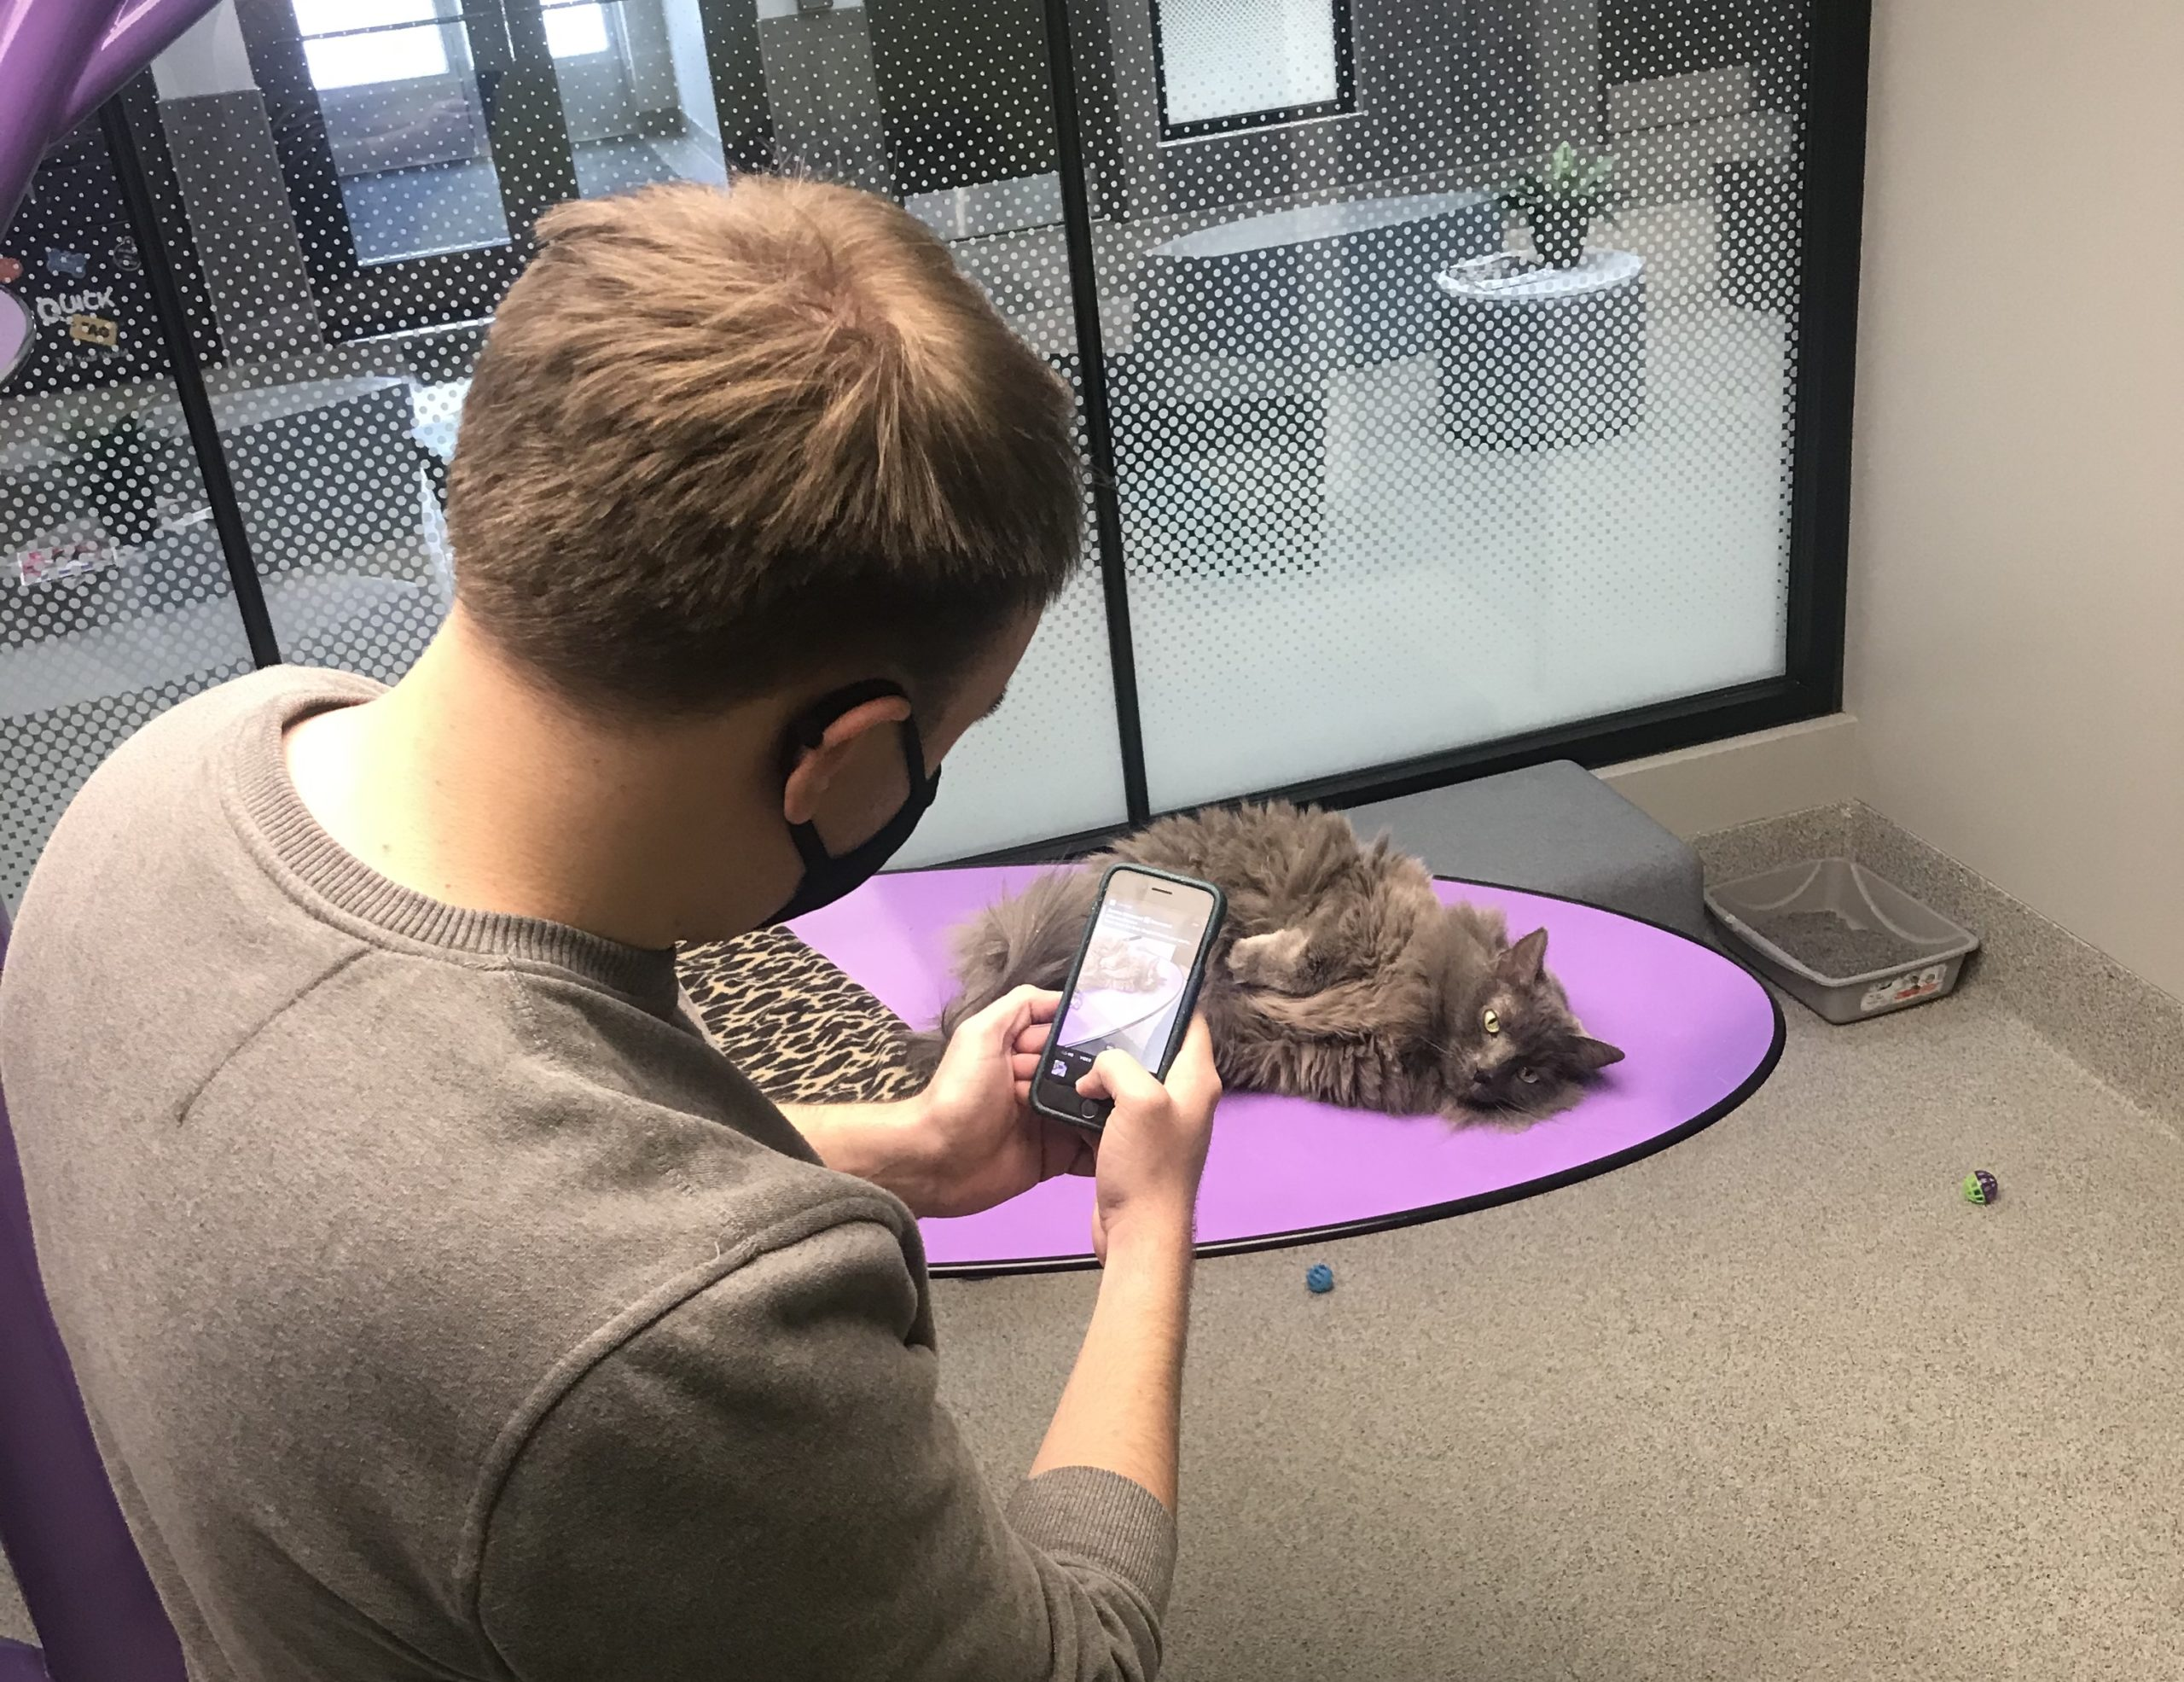 Brenden Gepson, a marketing specialist for the Nebraska Humane Society, takes a photo of one of the humane society's cats to post on social media.